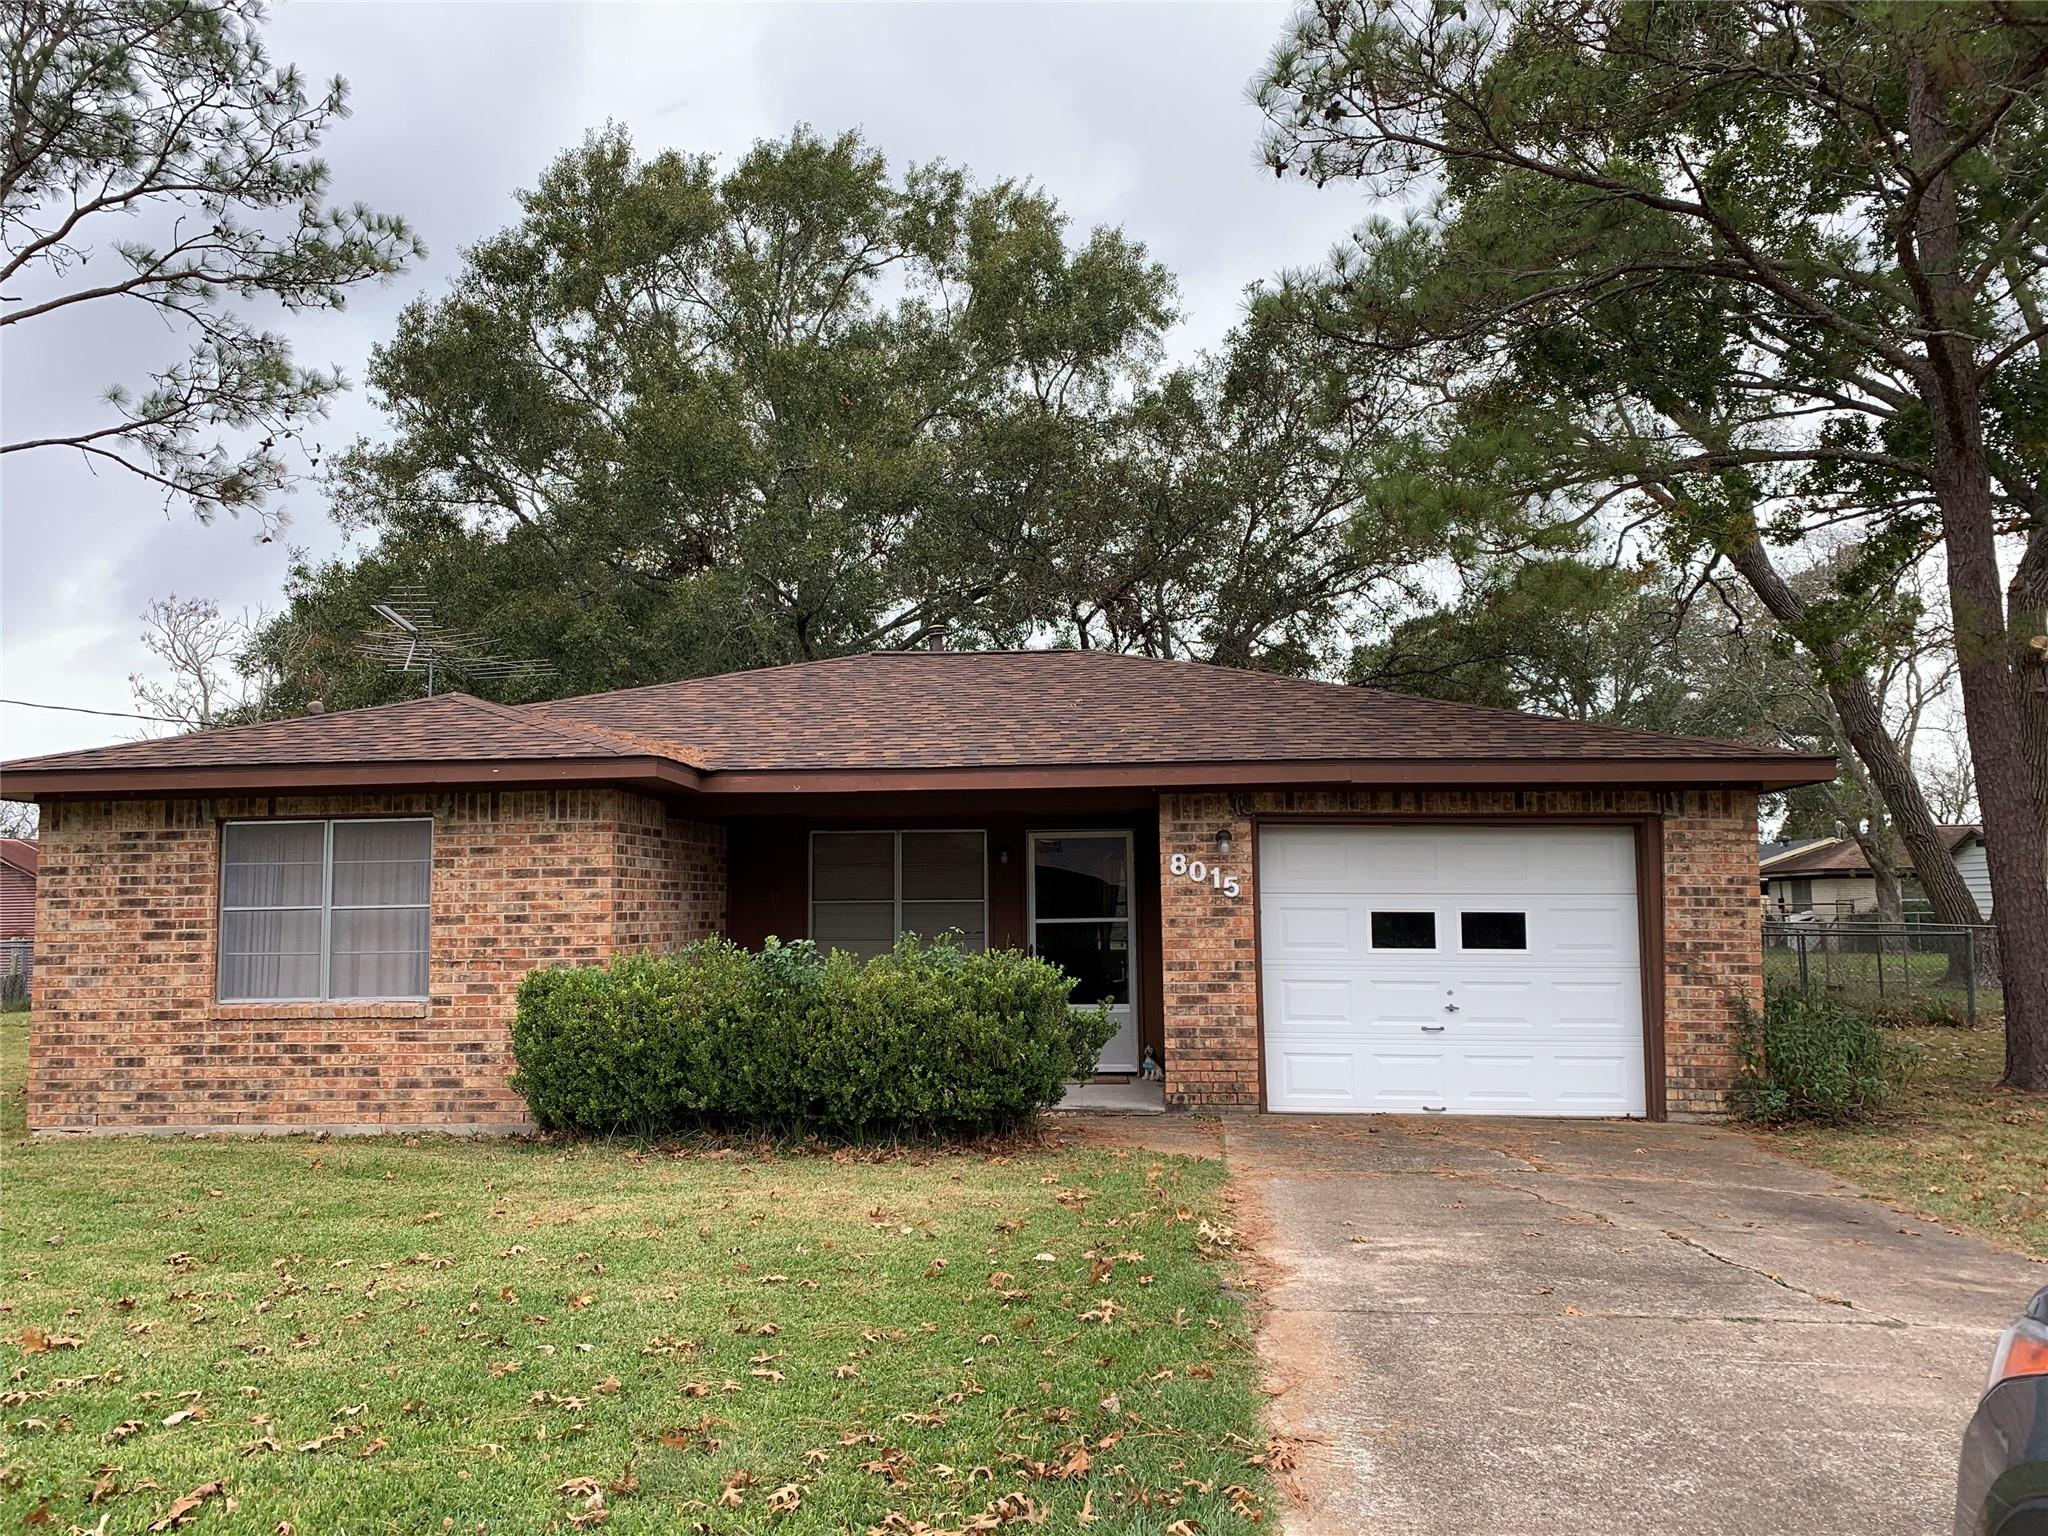 8015 Church Property Photo - Hungerford, TX real estate listing